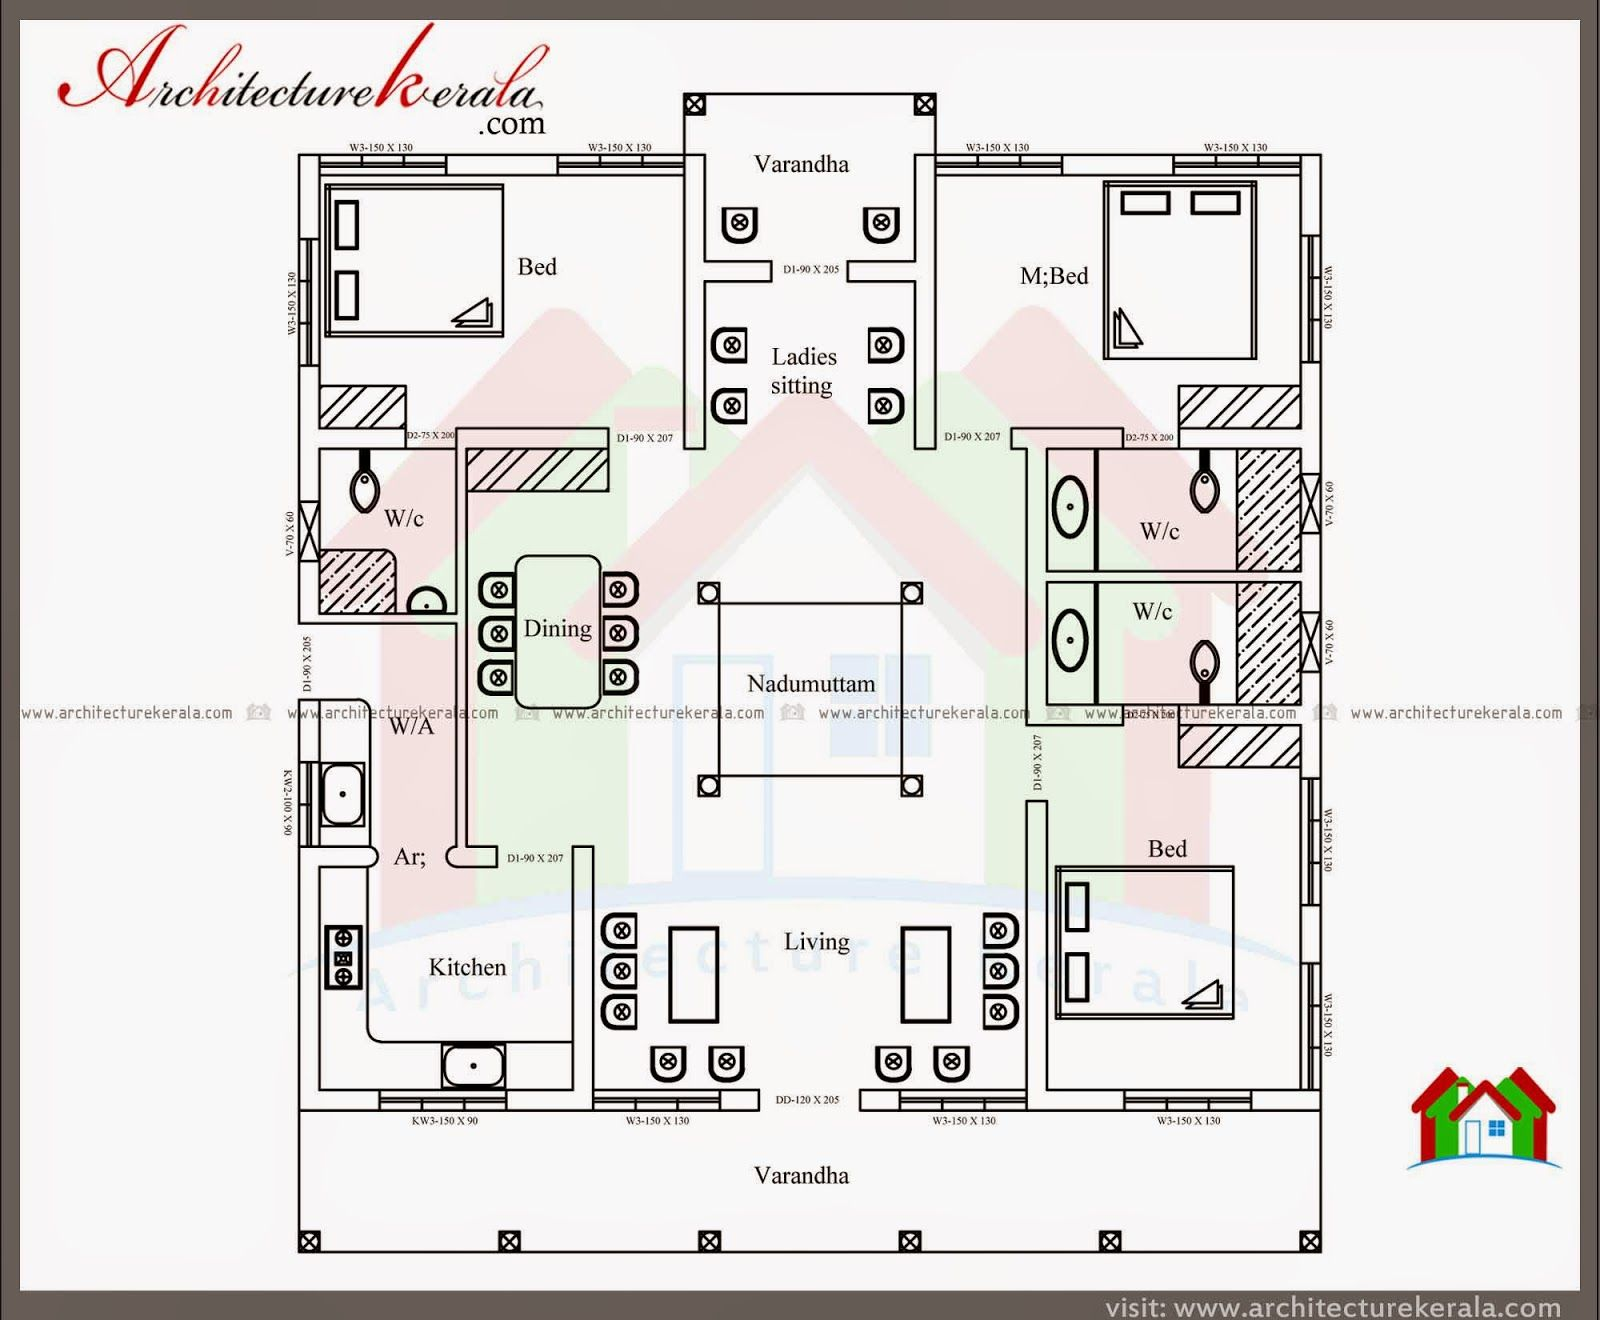 Architecture Design Kerala Model house plans kerala model nalukettu | home and house style